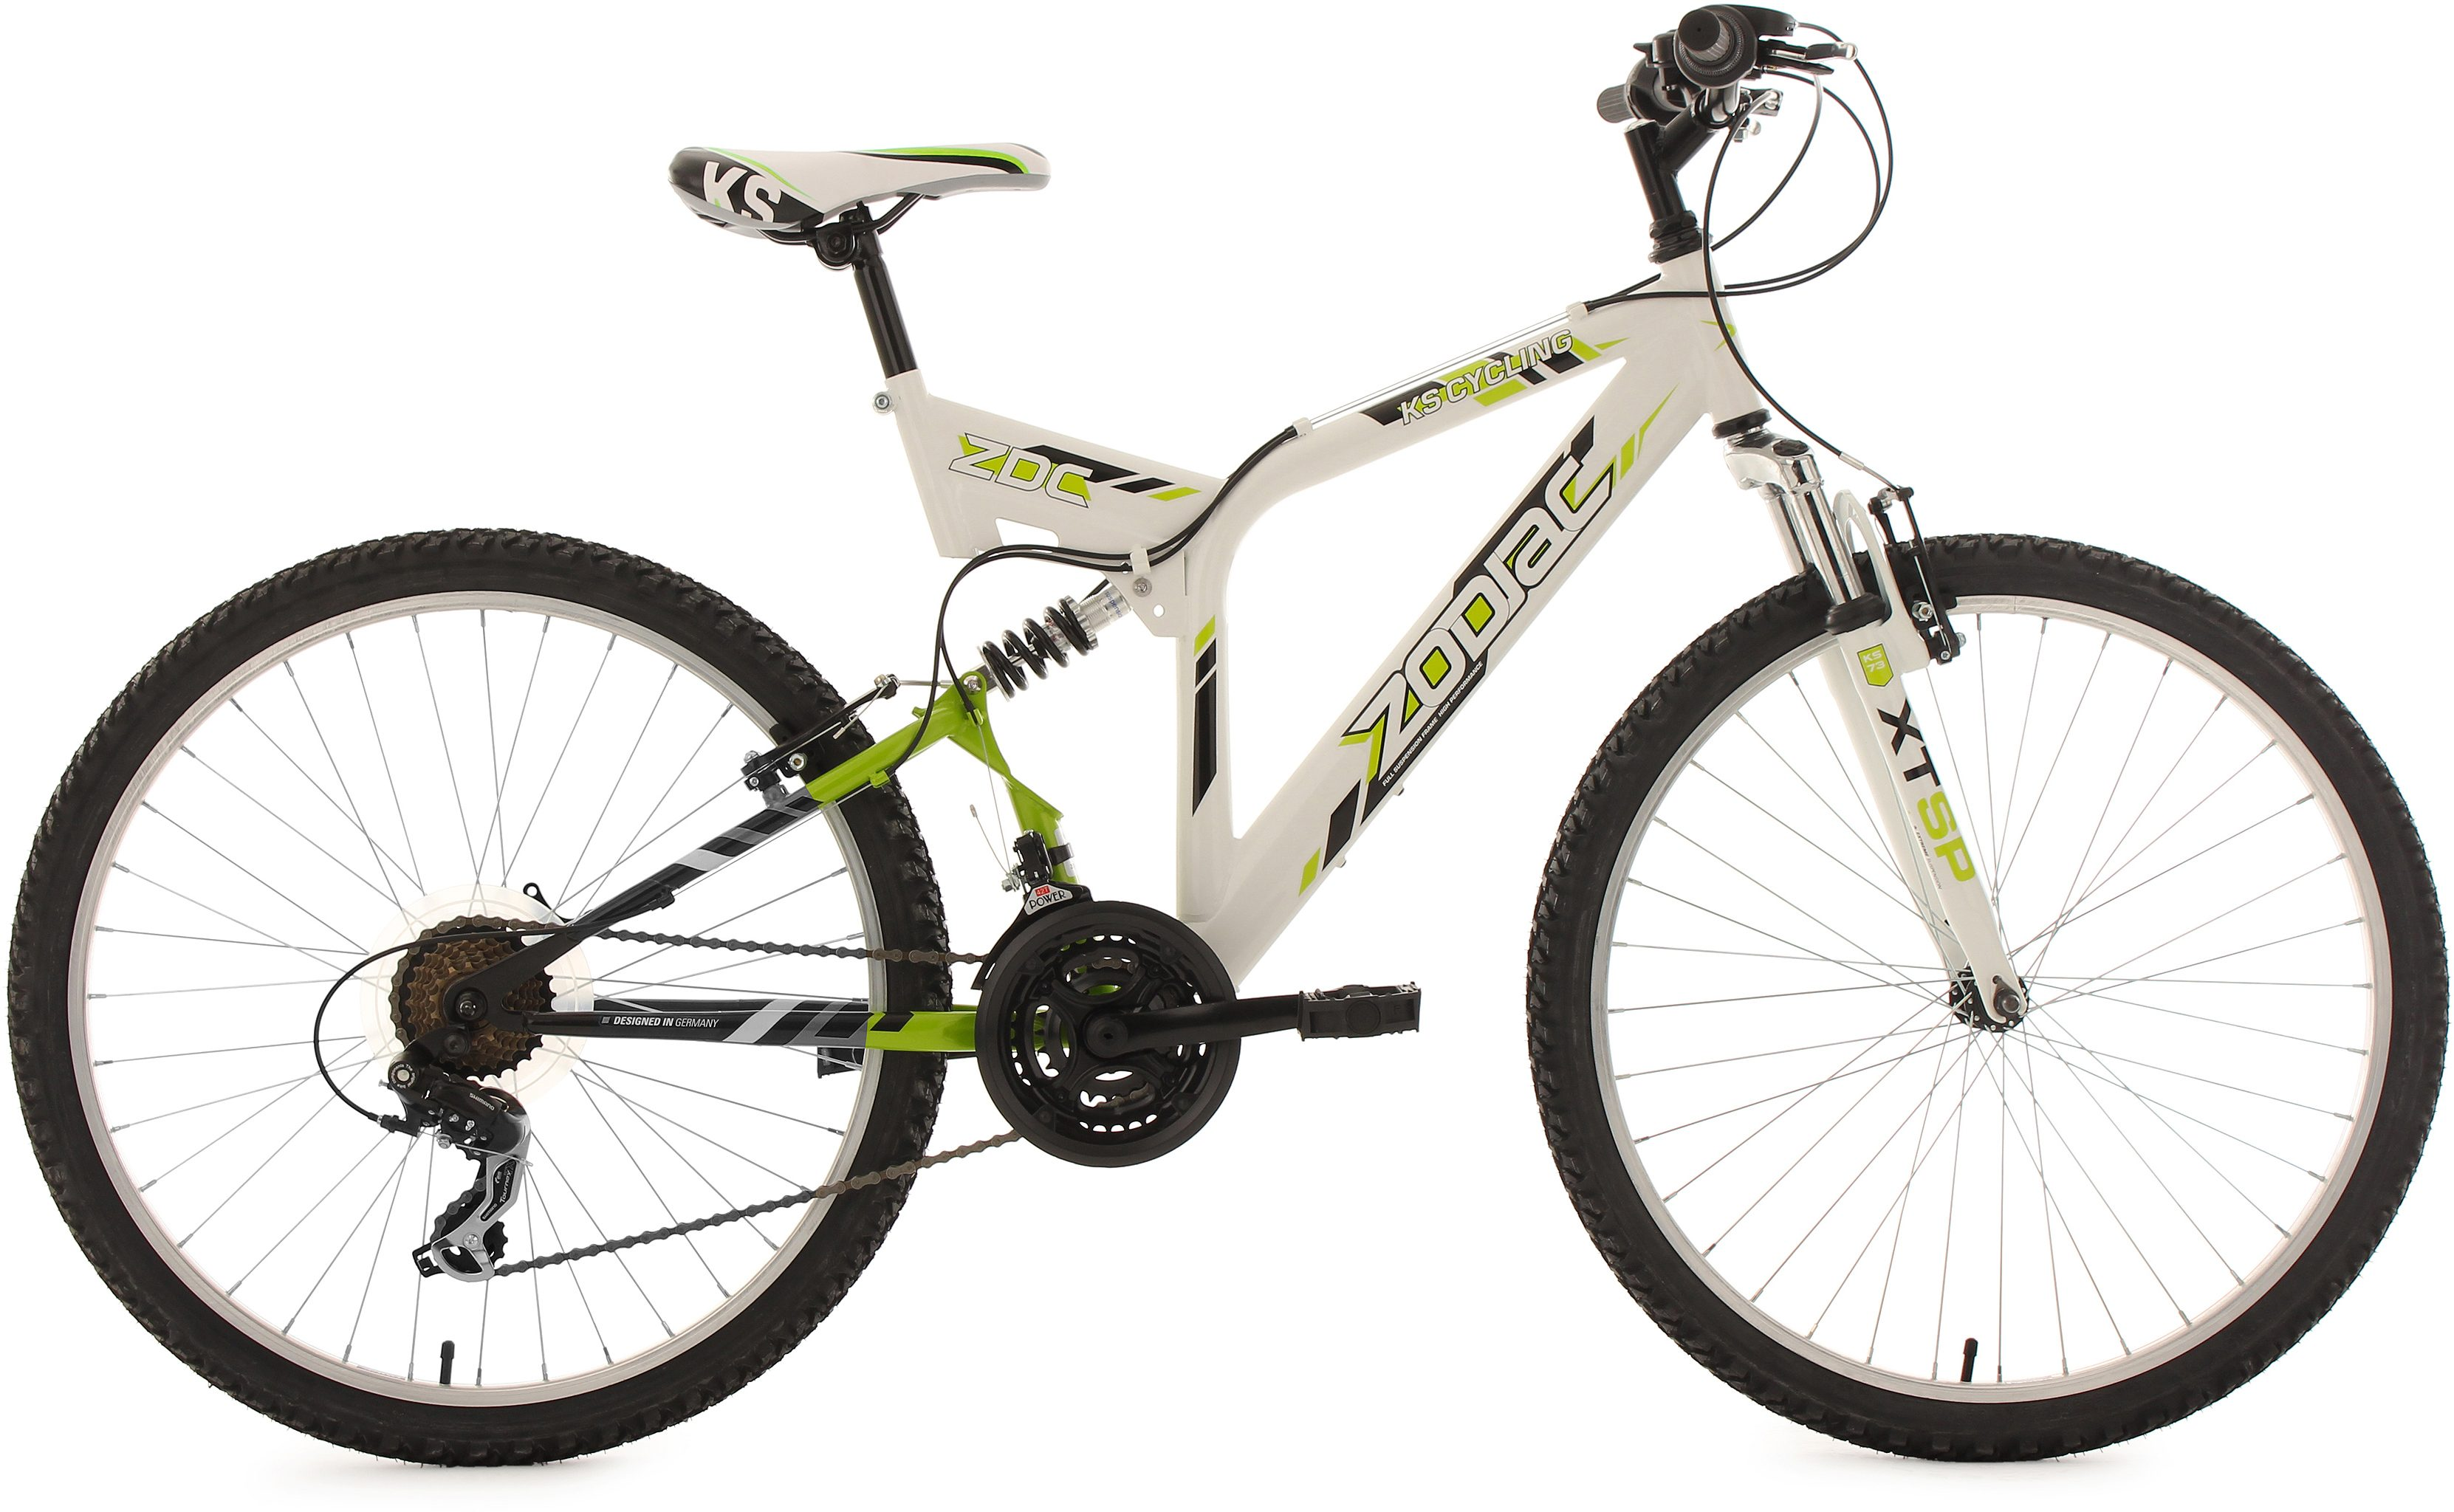 KS Cycling Fully-Mountainbike, 26 Zoll, 21 Gang-ShimanoTourney Kettenschaltung, »Zodiac«